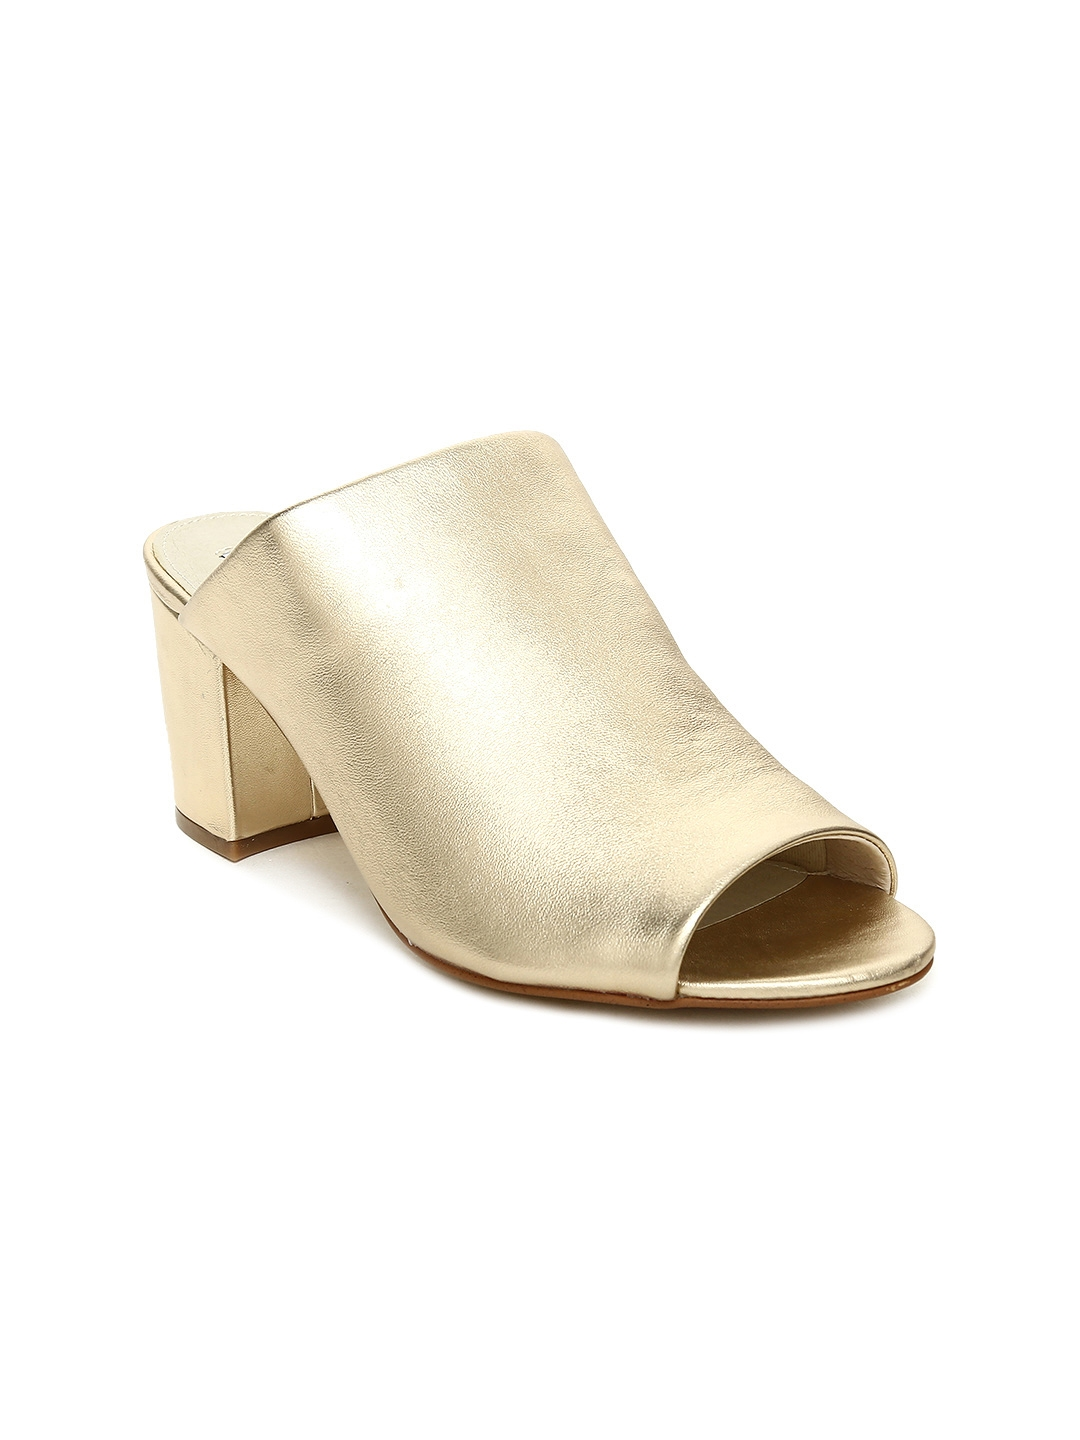 70dcd9c7a47 Buy Steve Madden Women Gold Toned INFINITY Leather Heeled Mules ...